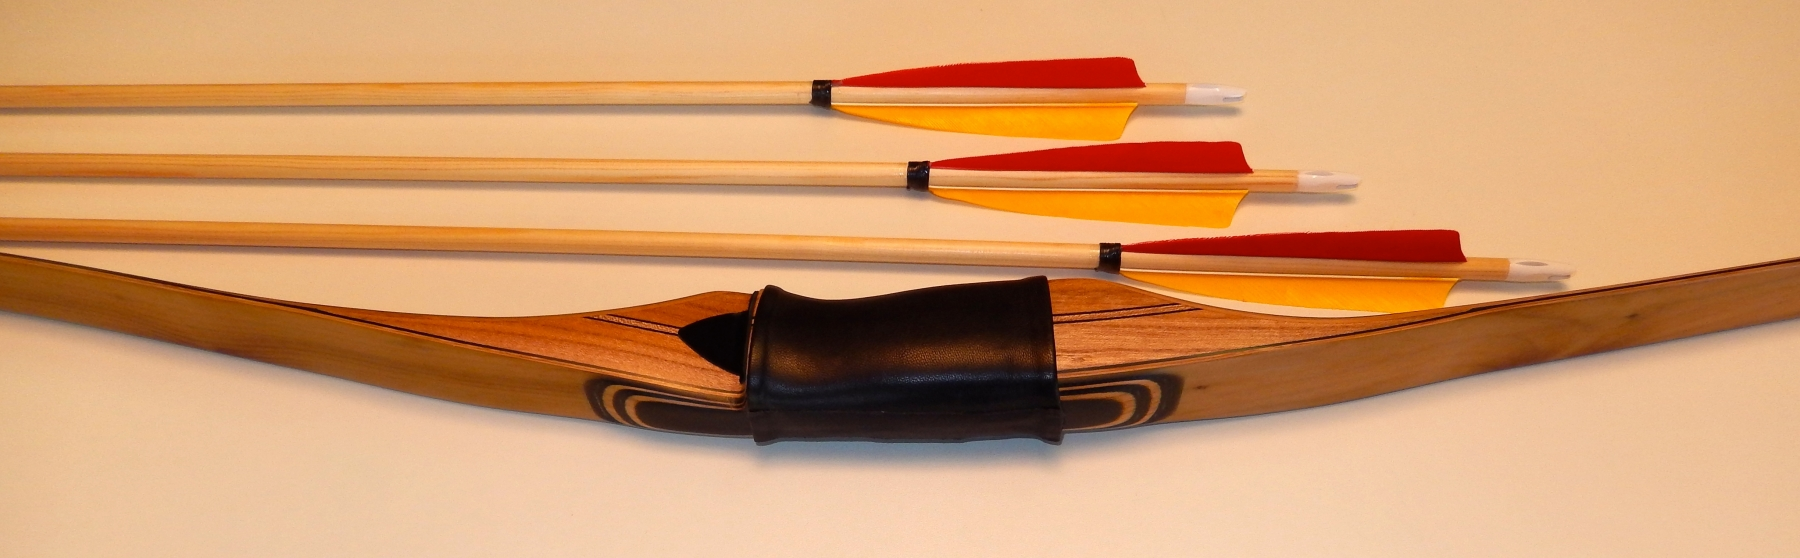 Denis Droz - Bowyer - Longbow maker - Mad'in Europe